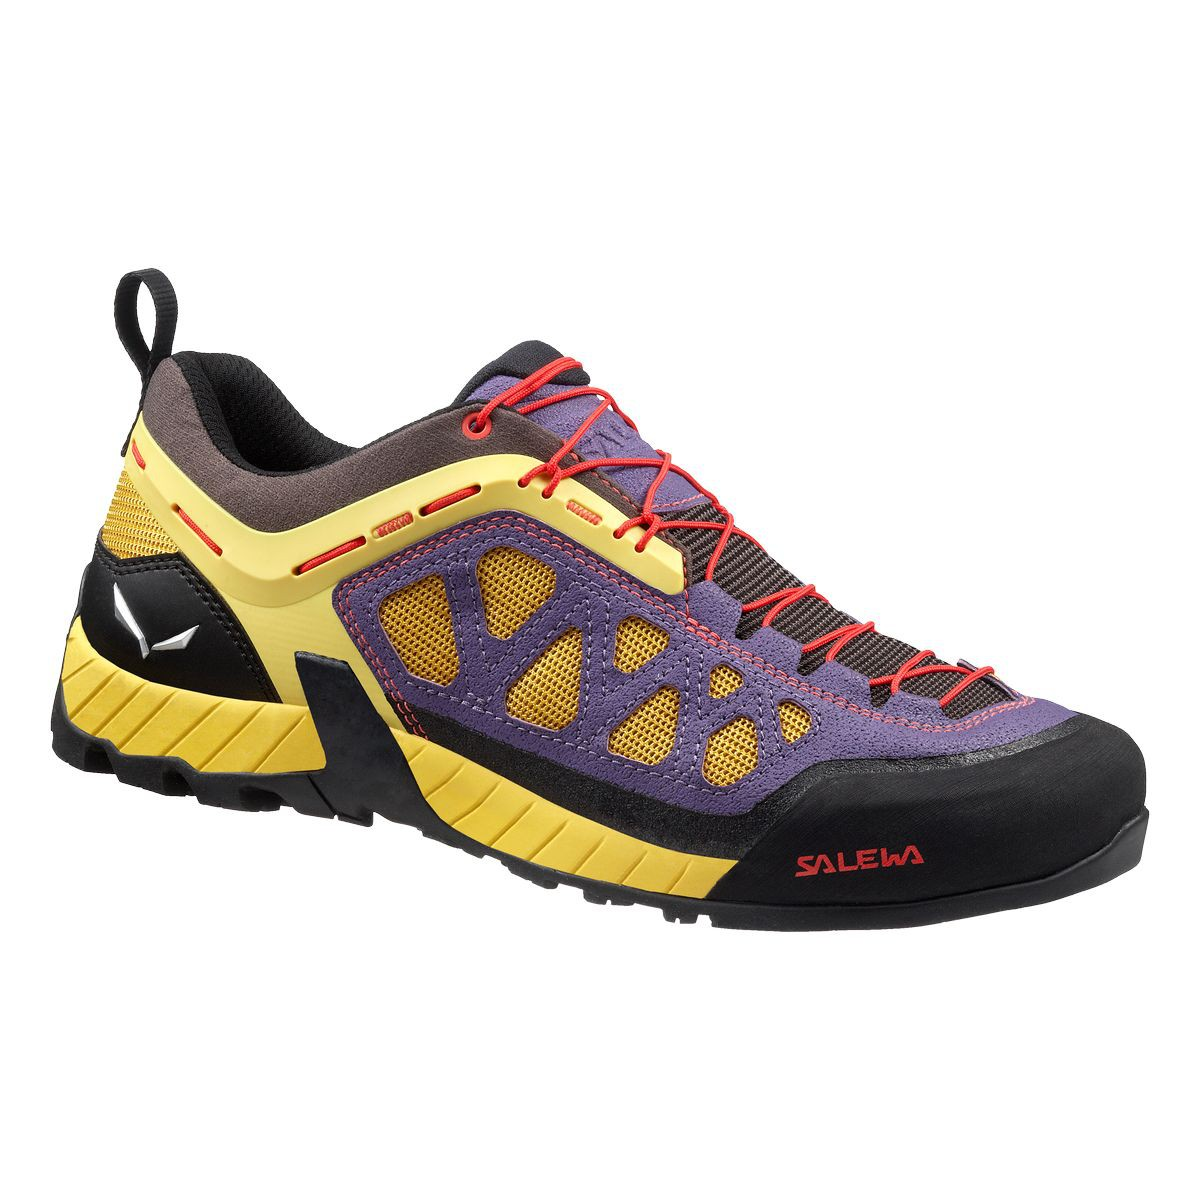 Треккинговые кроссовки Salewa 2016 Tech Approach MS FIRETAIL 3  Mystical Papavero 0c4dafd5195